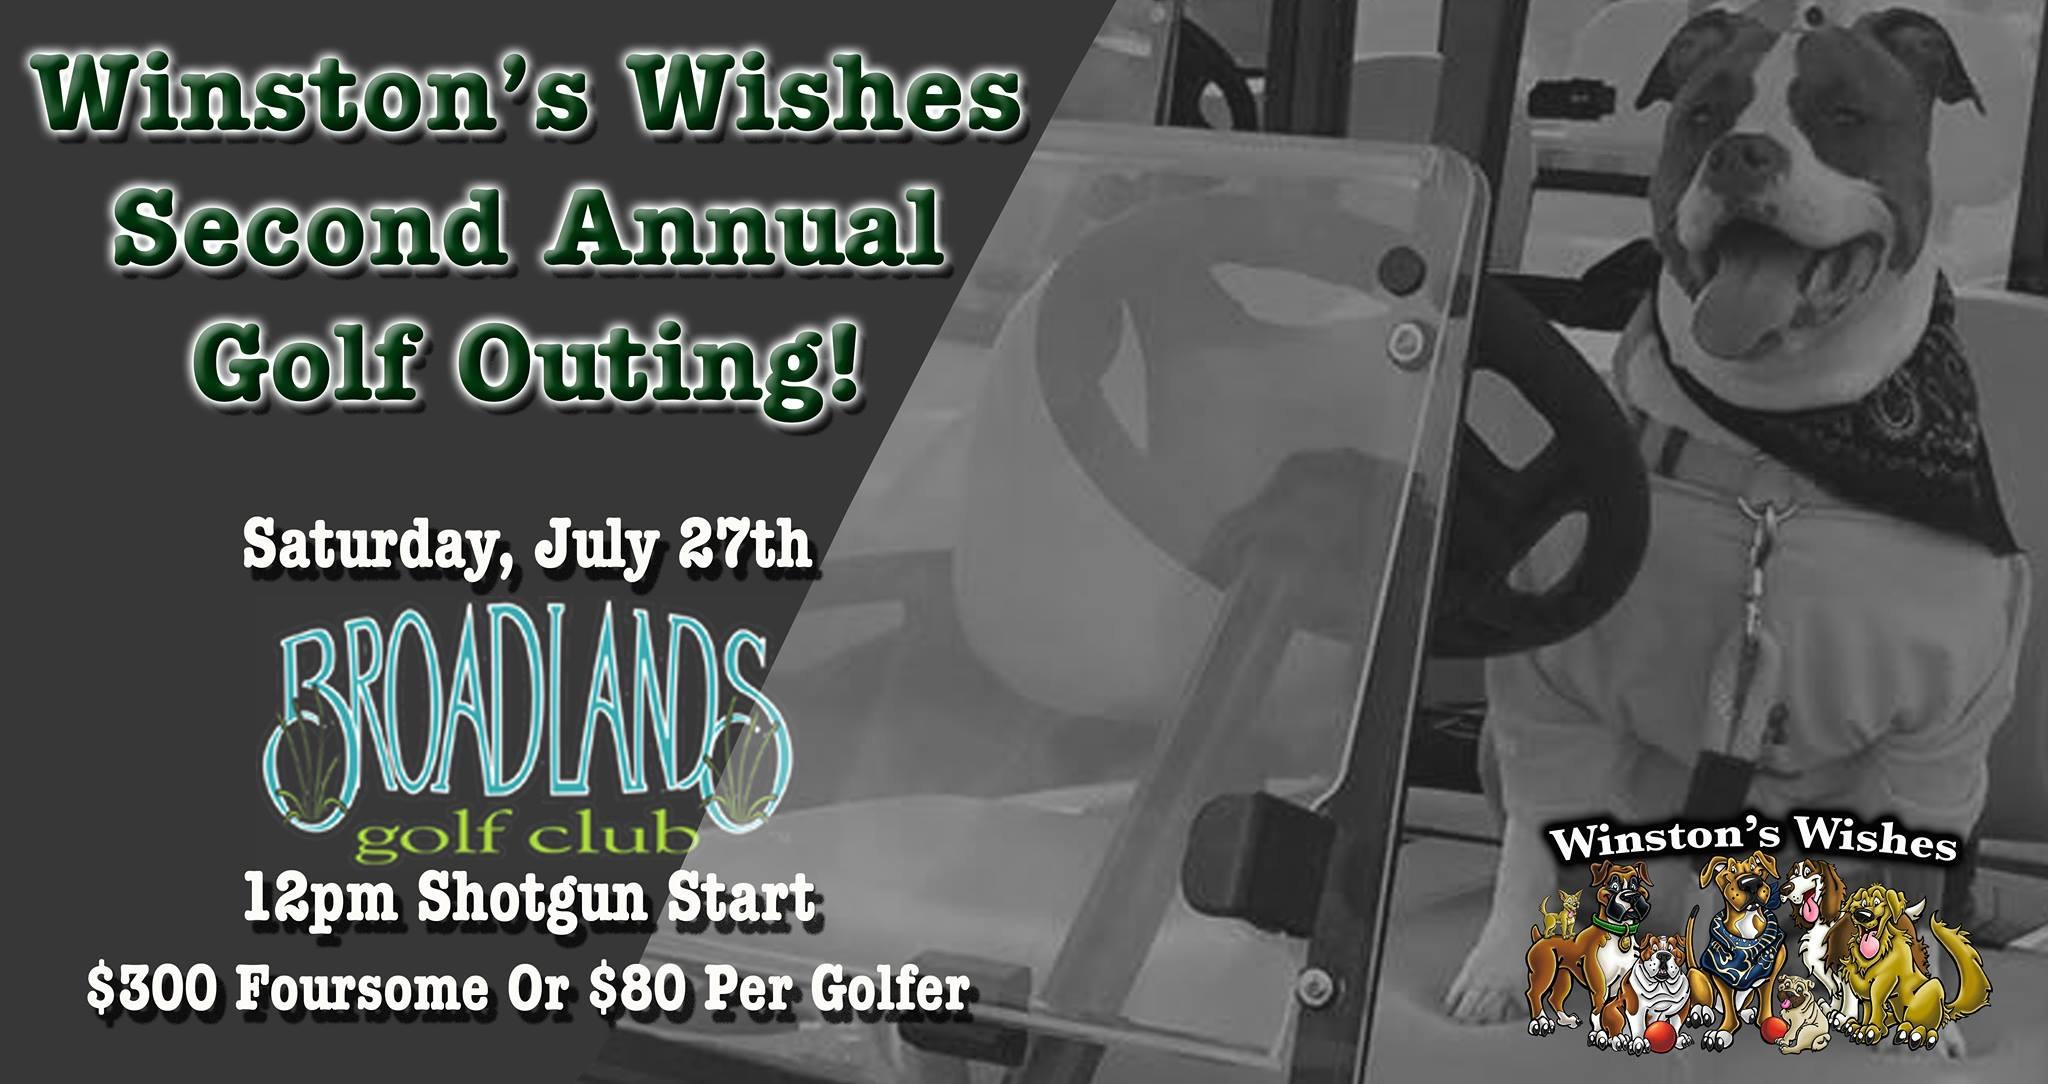 Second Annual Golf Outing!